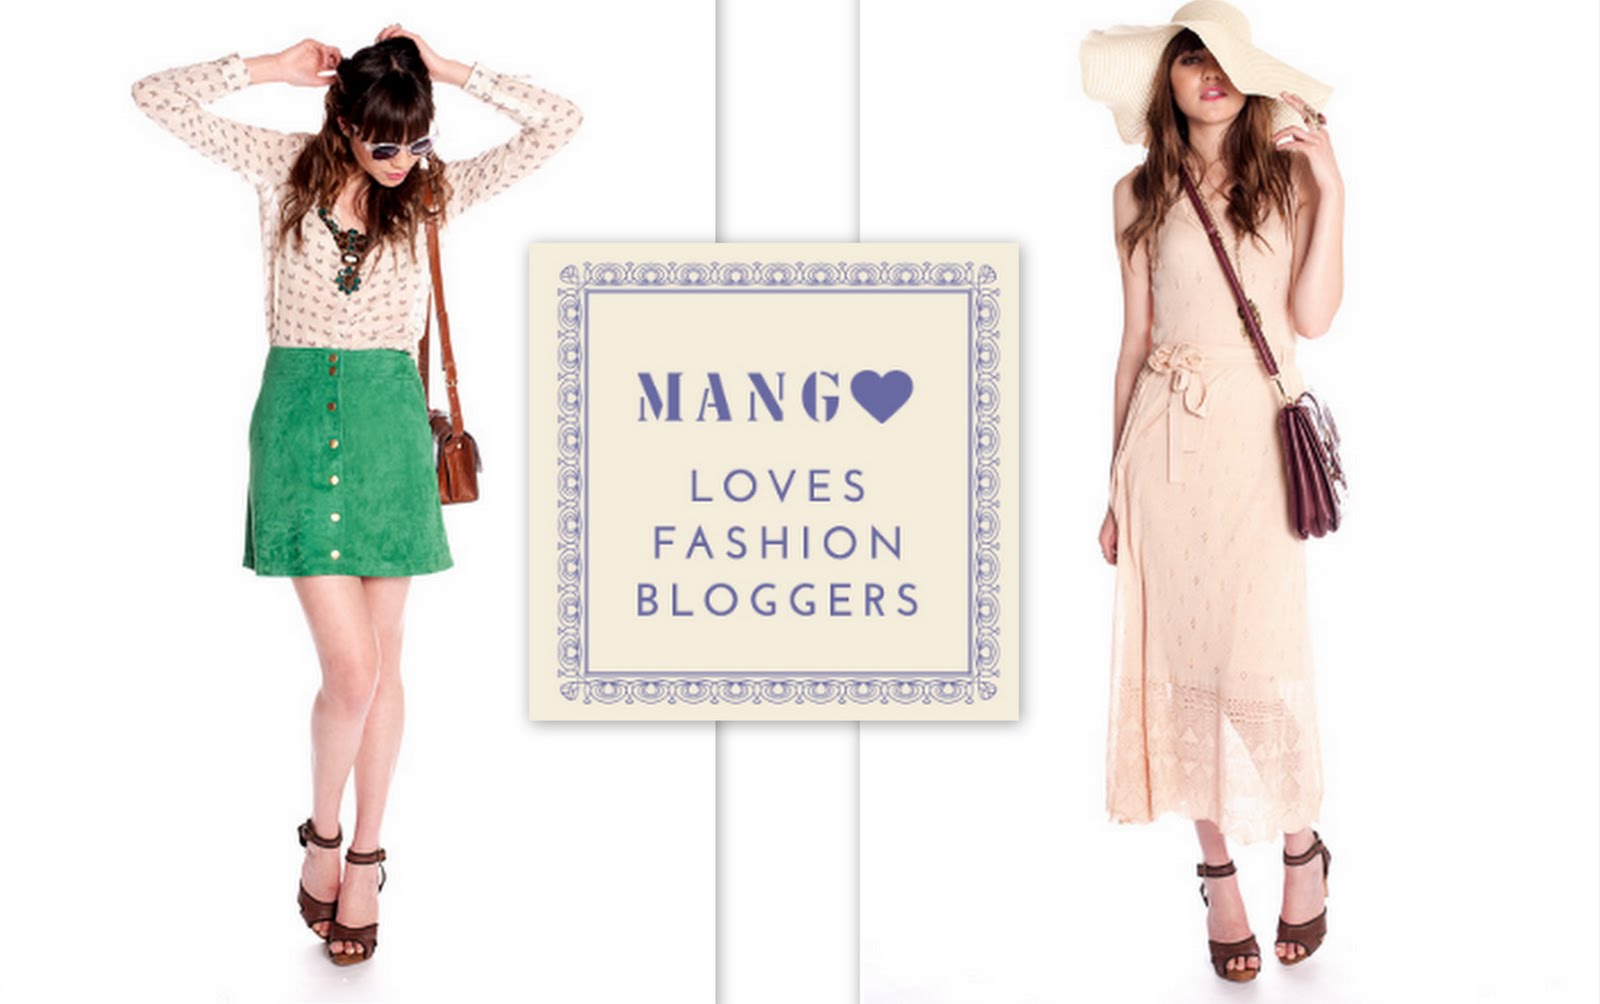 Stories: MANGO LOVES FASHION BLOGGERS